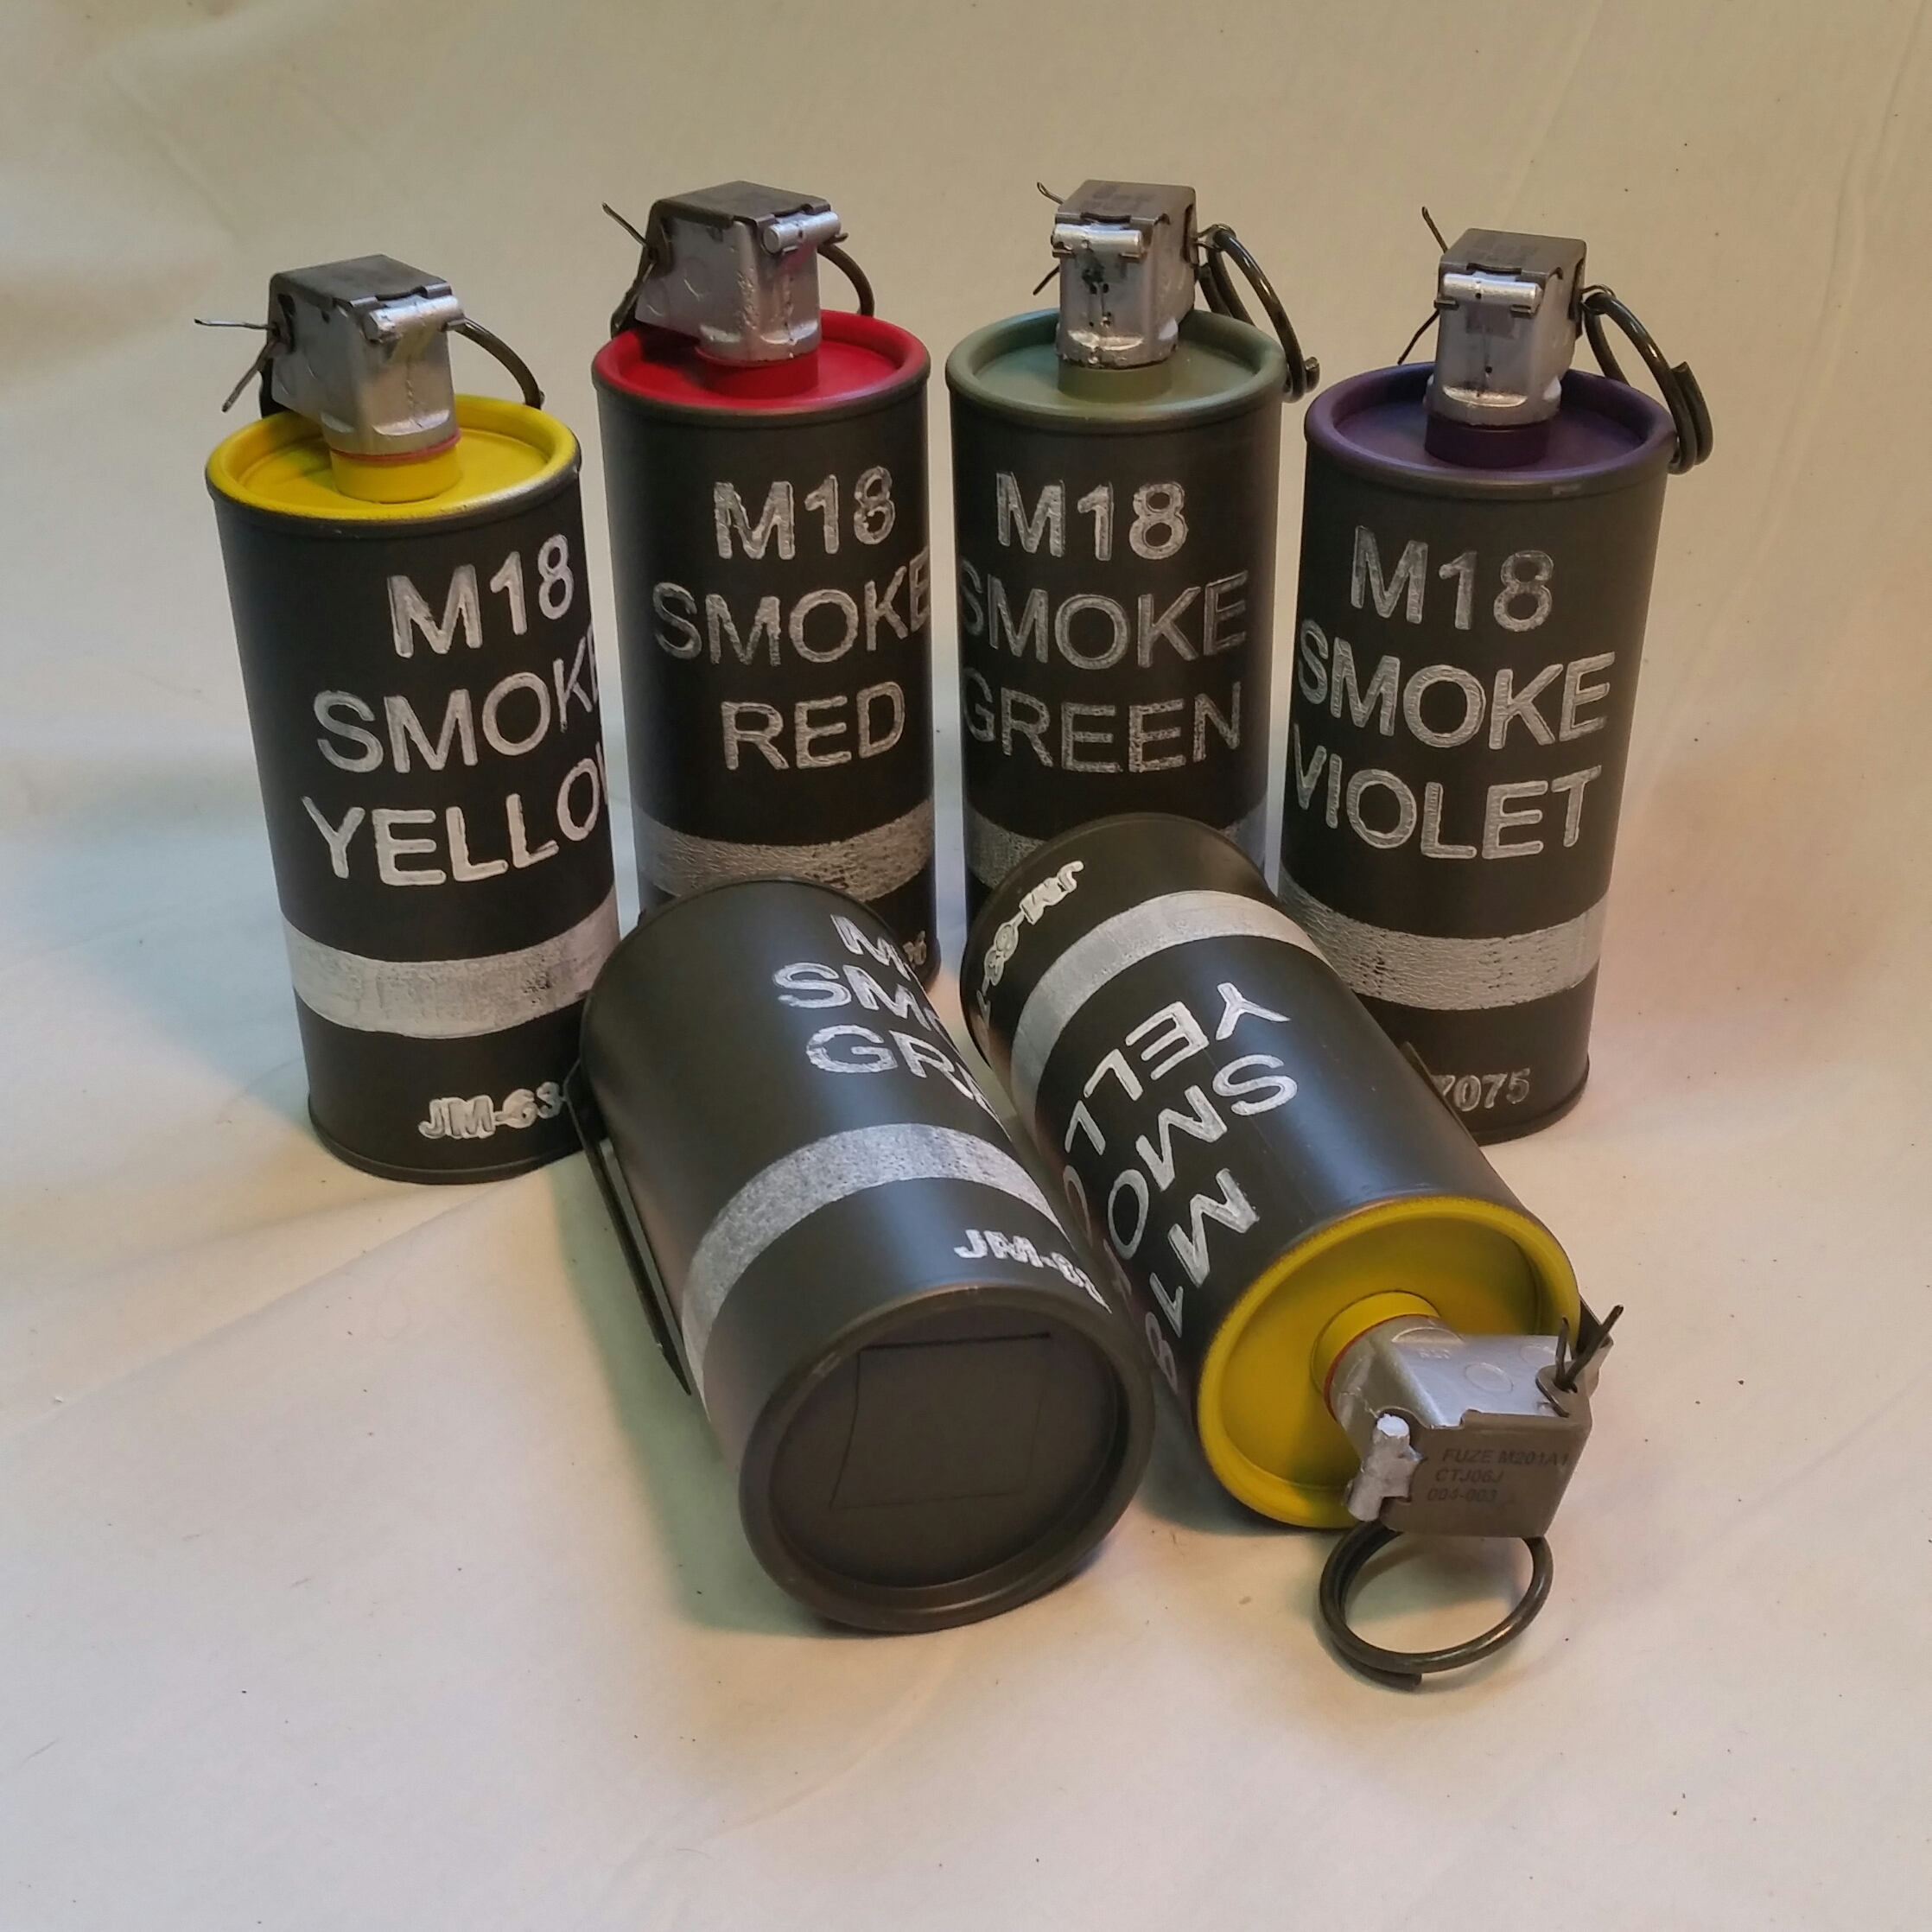 Smoke grenades were necessary for visual contact between ground forces and helicopters